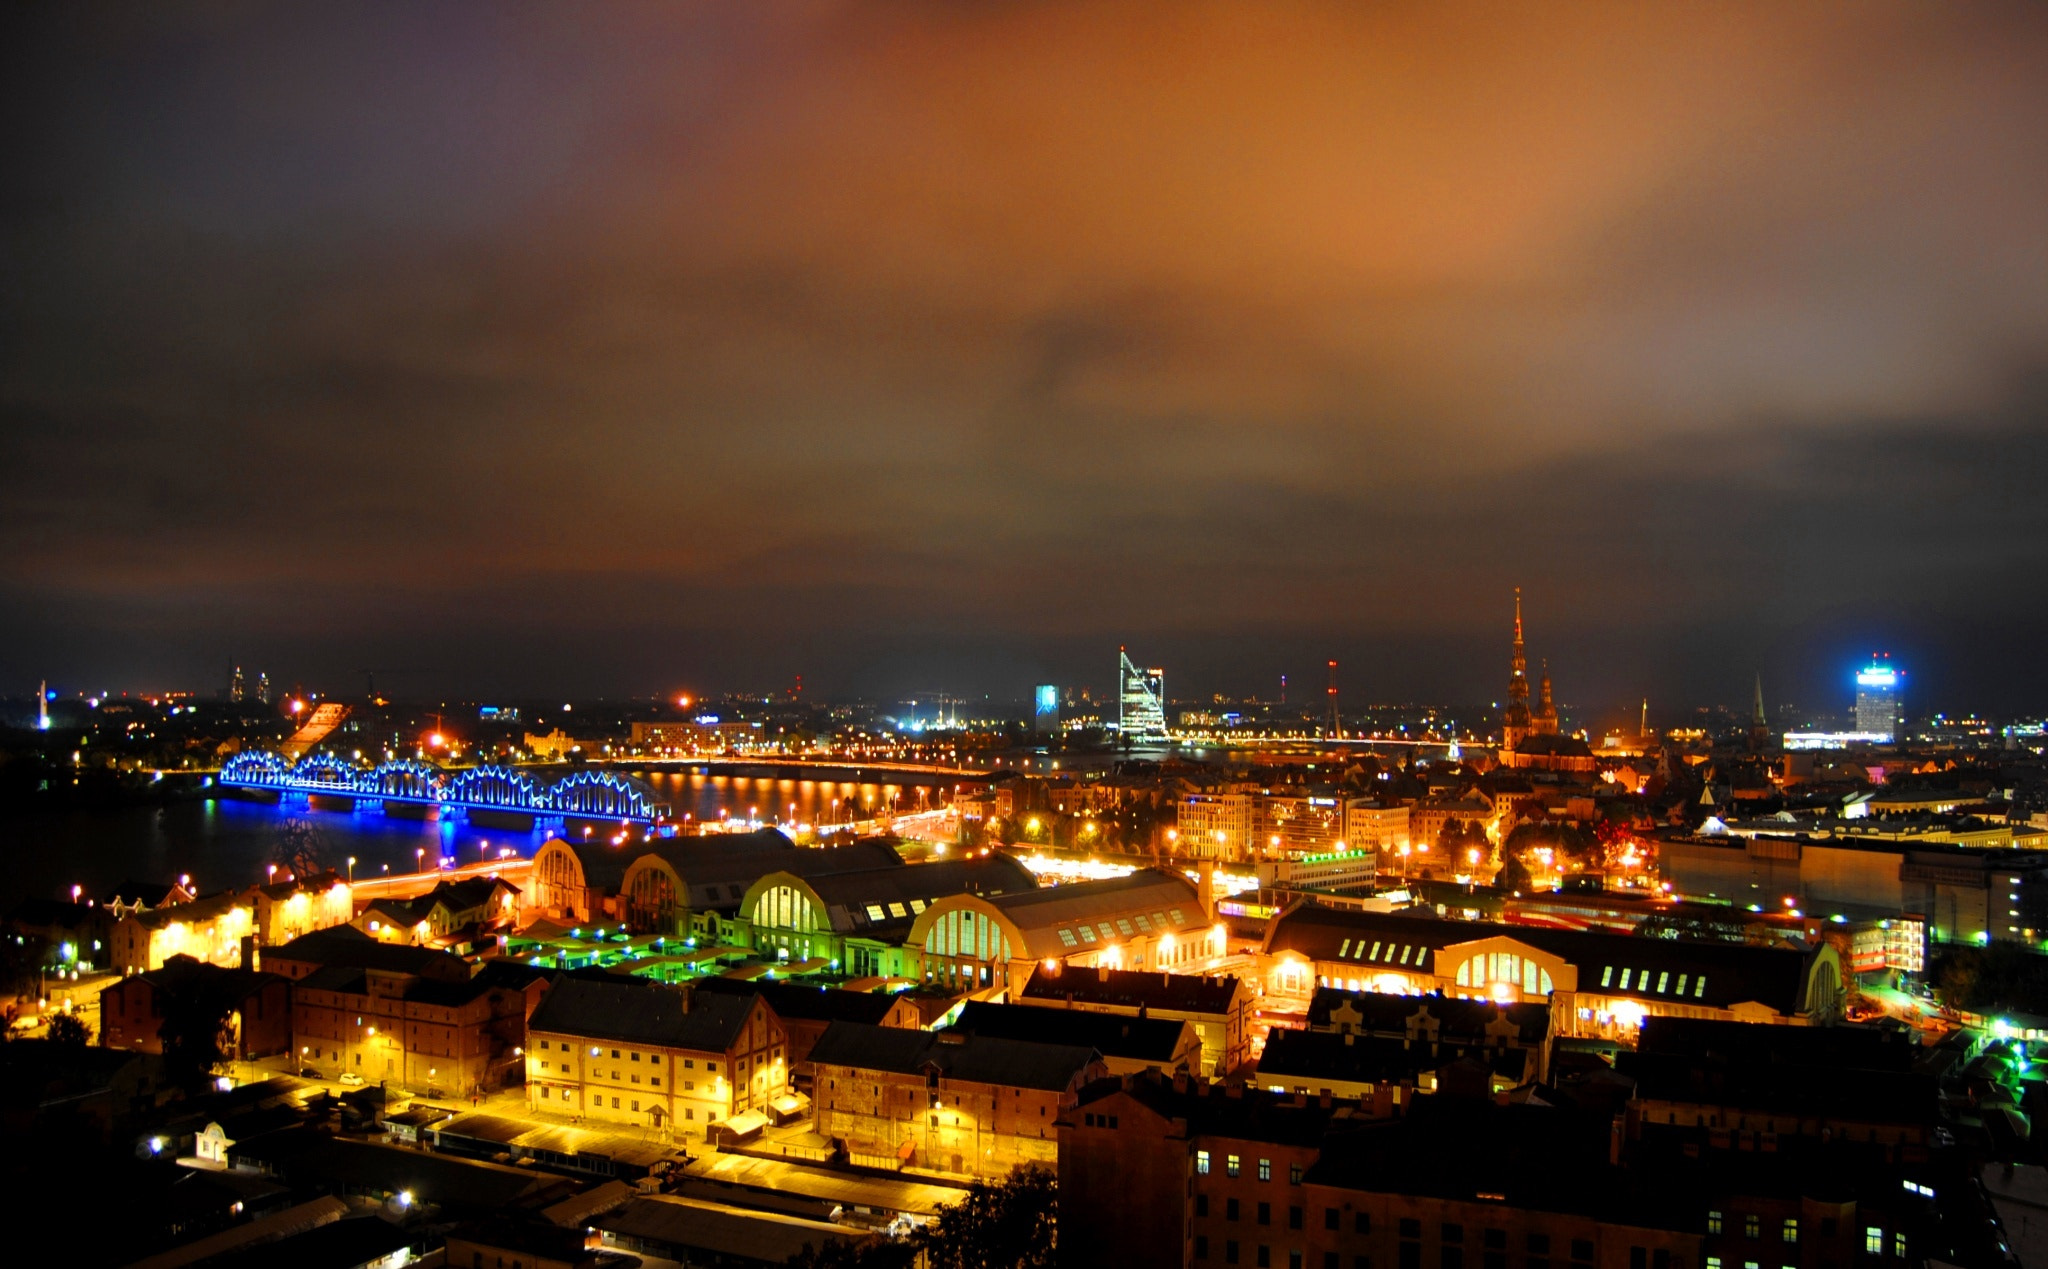 Photograph Riga by madara lapiņa on 500px